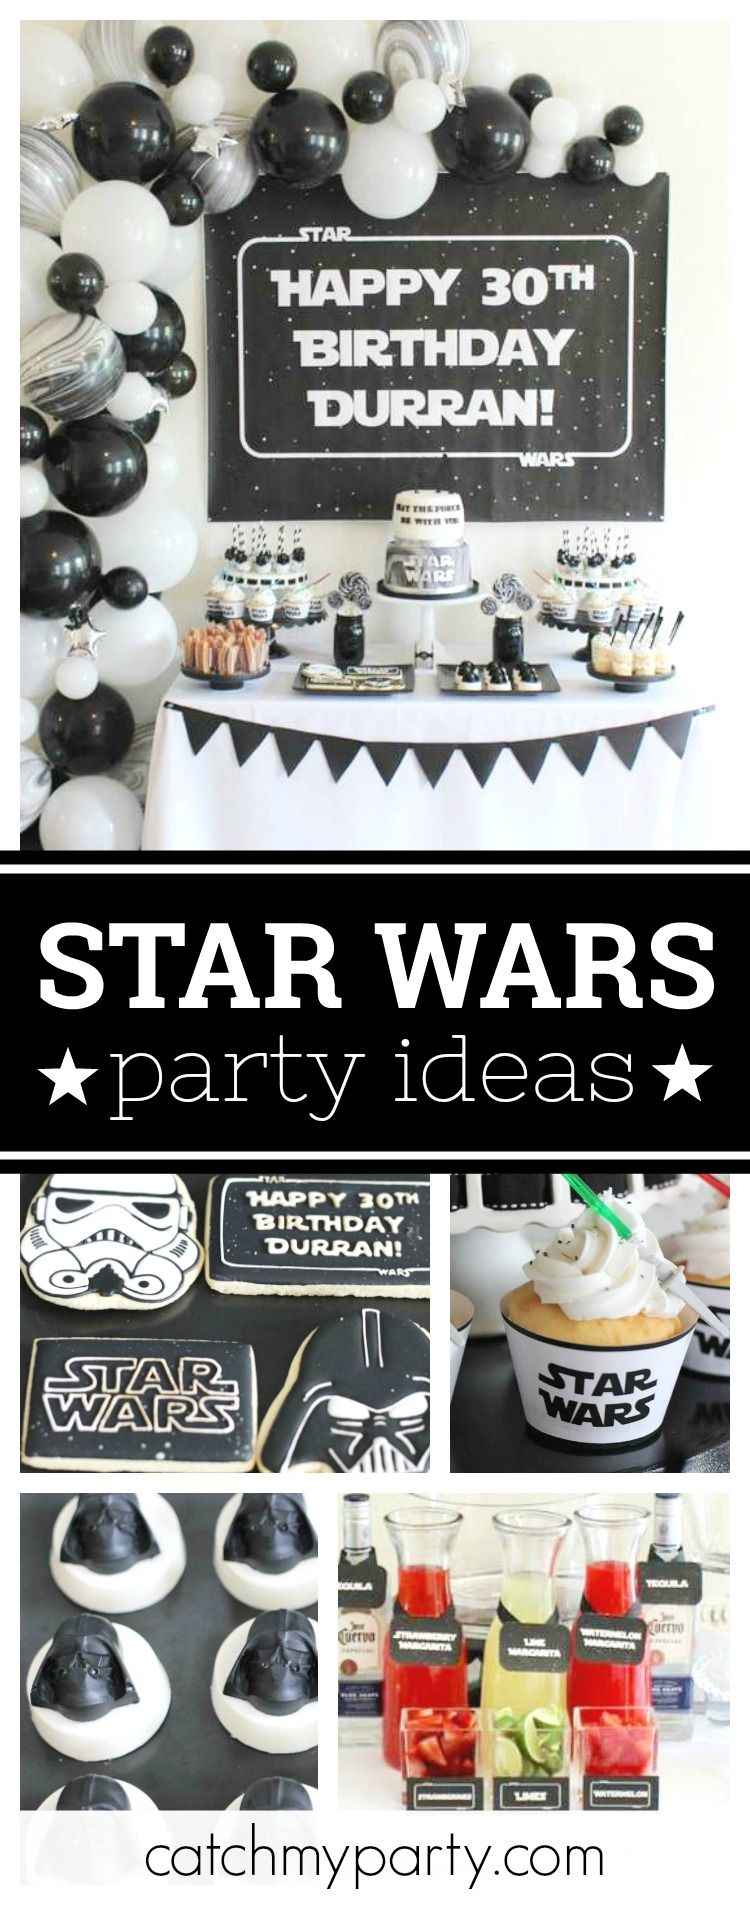 Check out this awesome 30th birthday Star Wars birthday